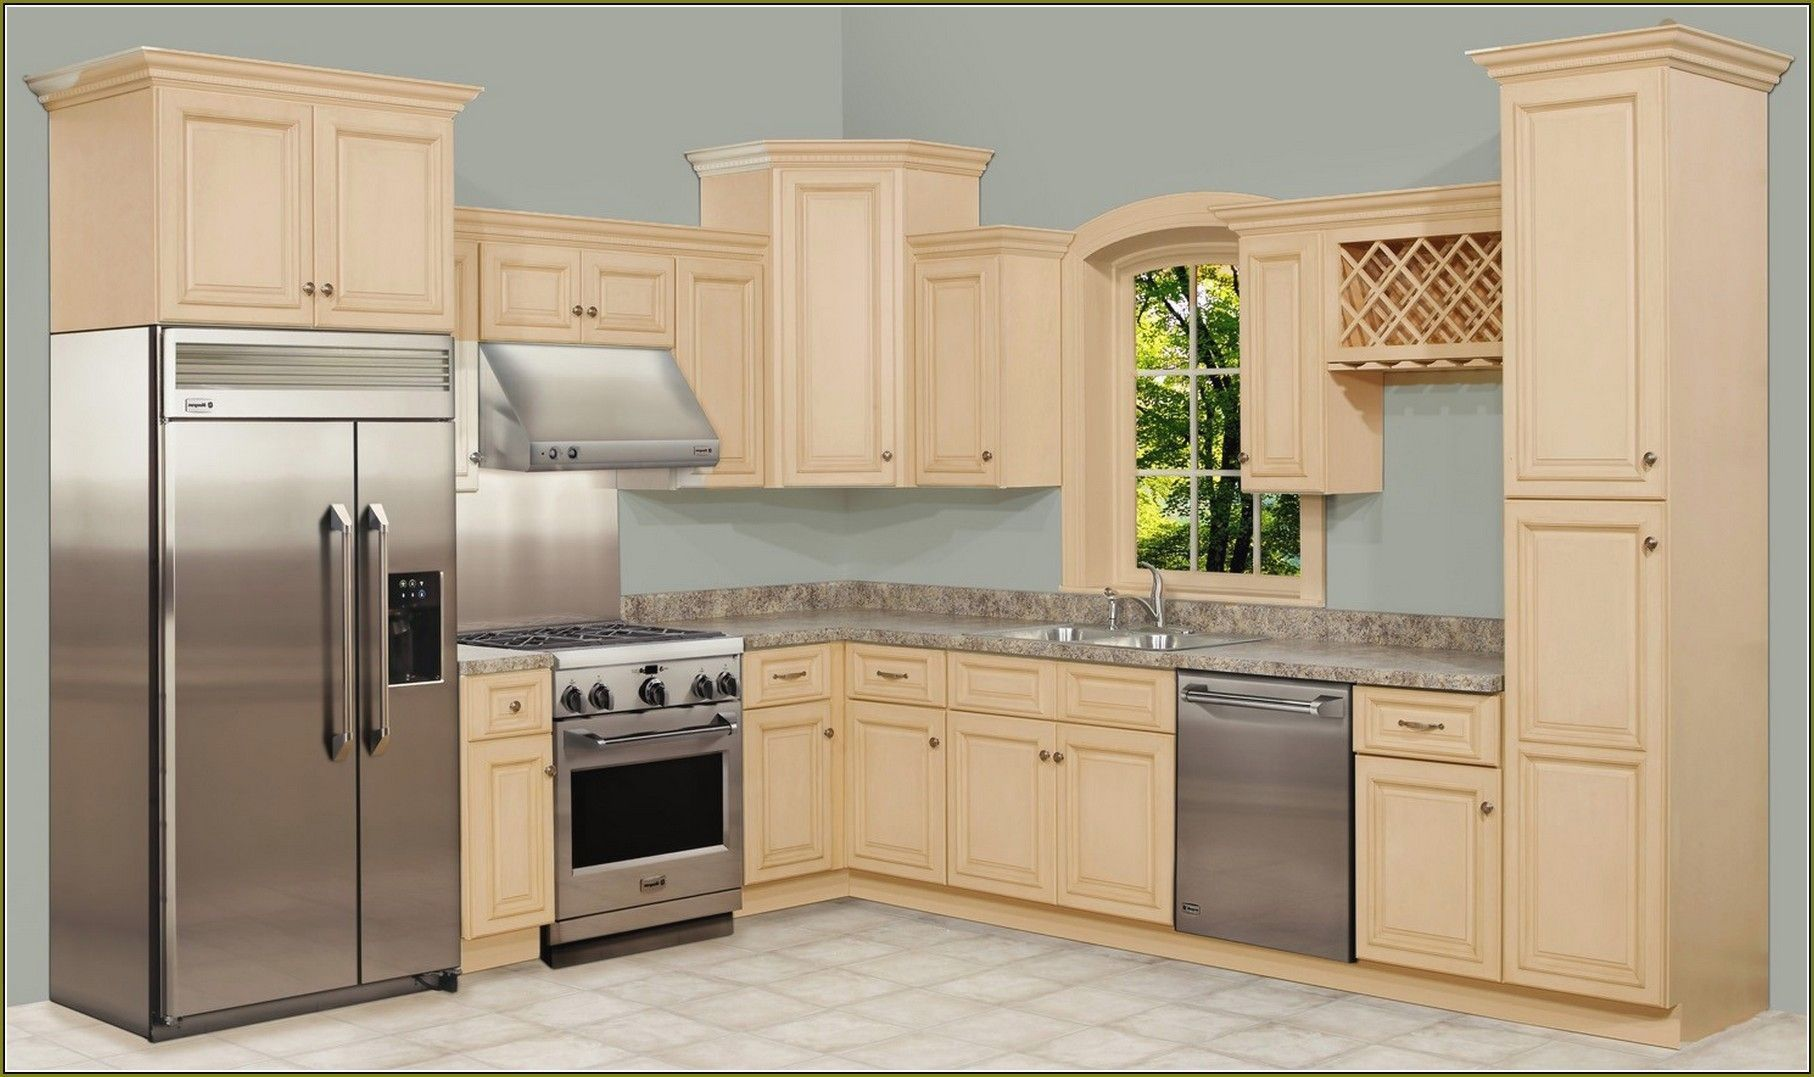 Luxury Home Depot Premade Kitchen Cabinets The Most Amazing And Also Interest Kitchen Cabinets Home Depot Unfinished Kitchen Cabinets Simple Kitchen Cabinets